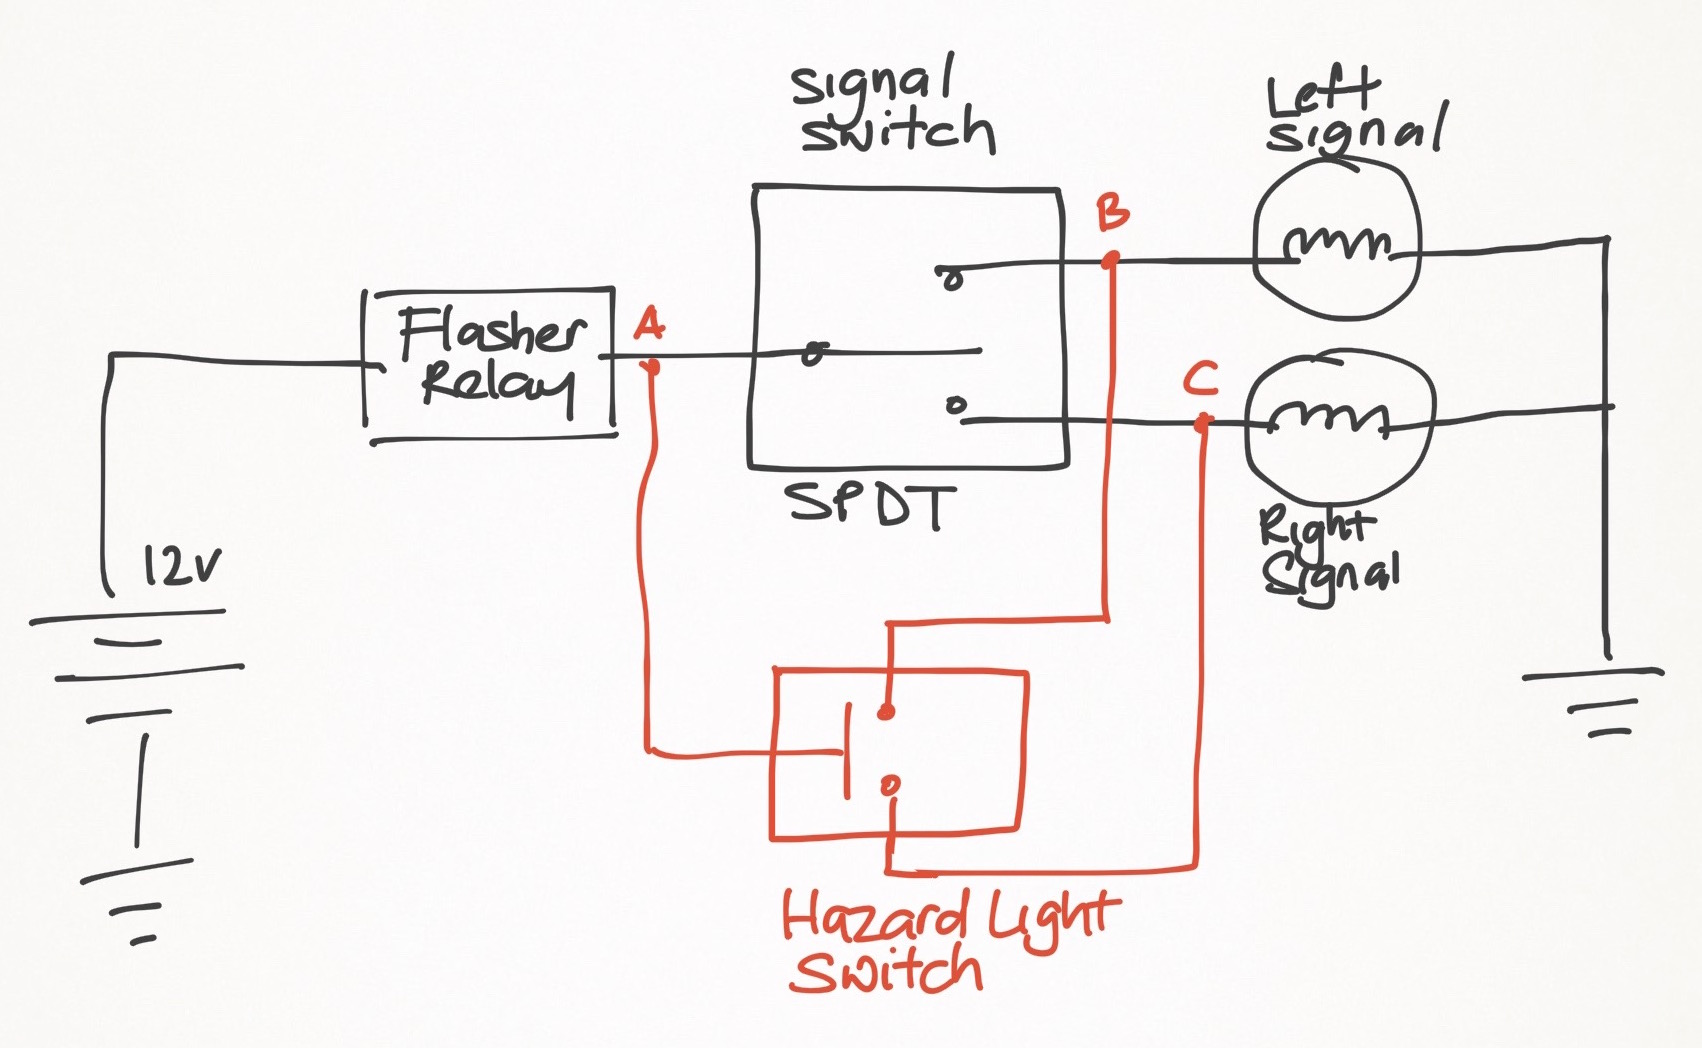 Hazard Light Wiring Diagram For Professional Switch Weekend 200ns Project Ramblings Of A Singapore Biker Boy Rh Sgbikerboy Com Car Motorcycle